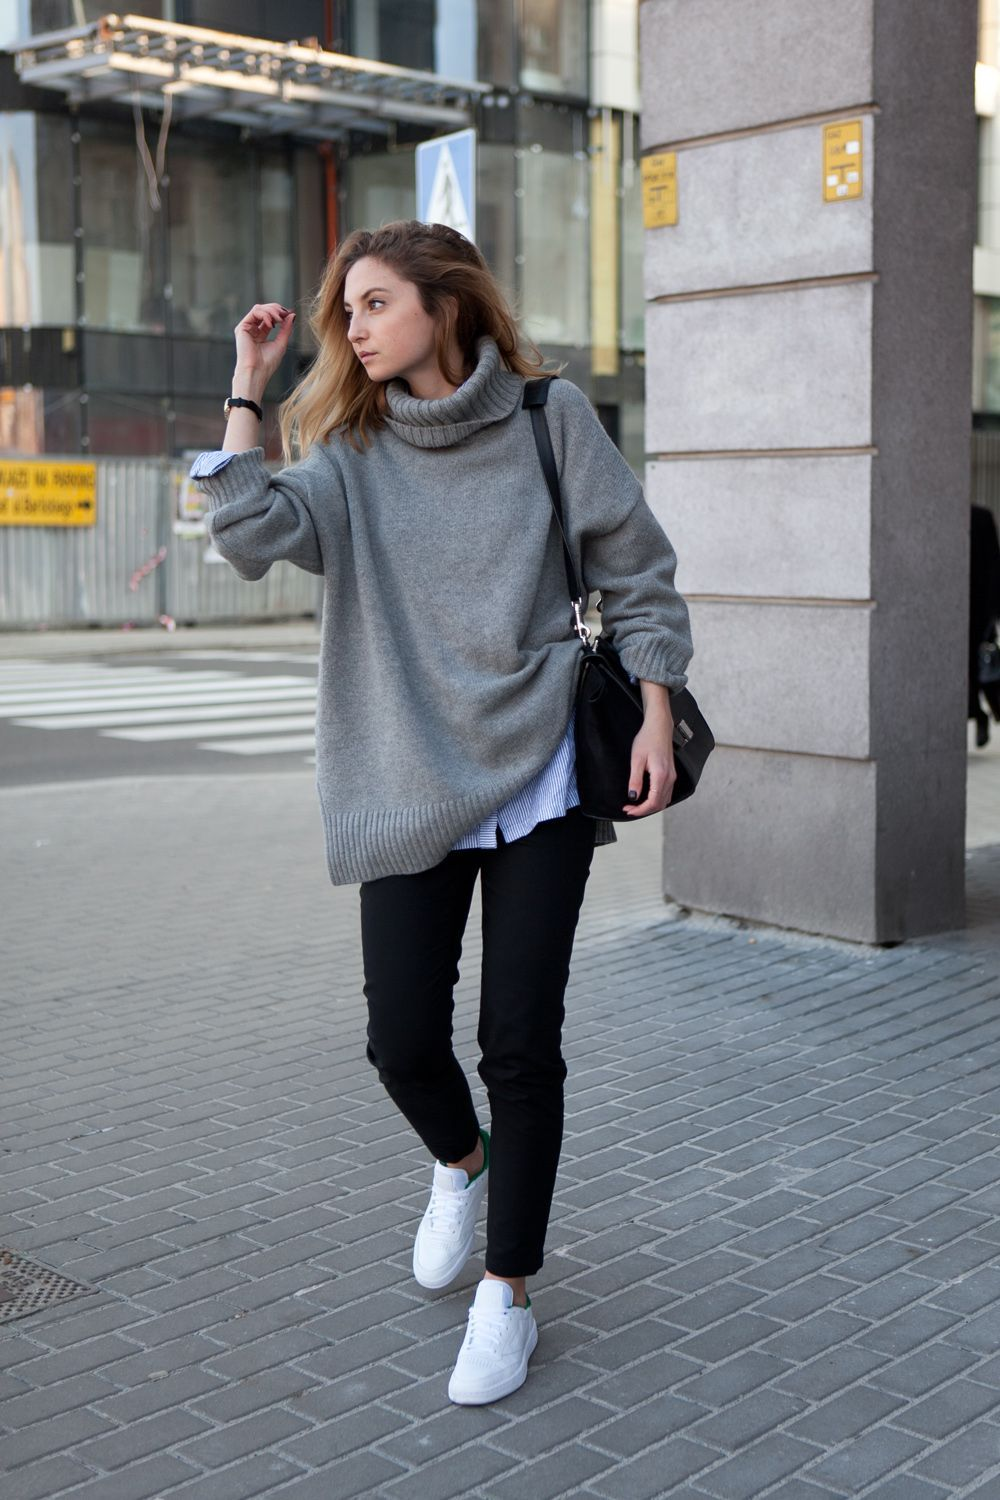 30+ Ways To Wear a Turtleneck Sweater | Sweater layering